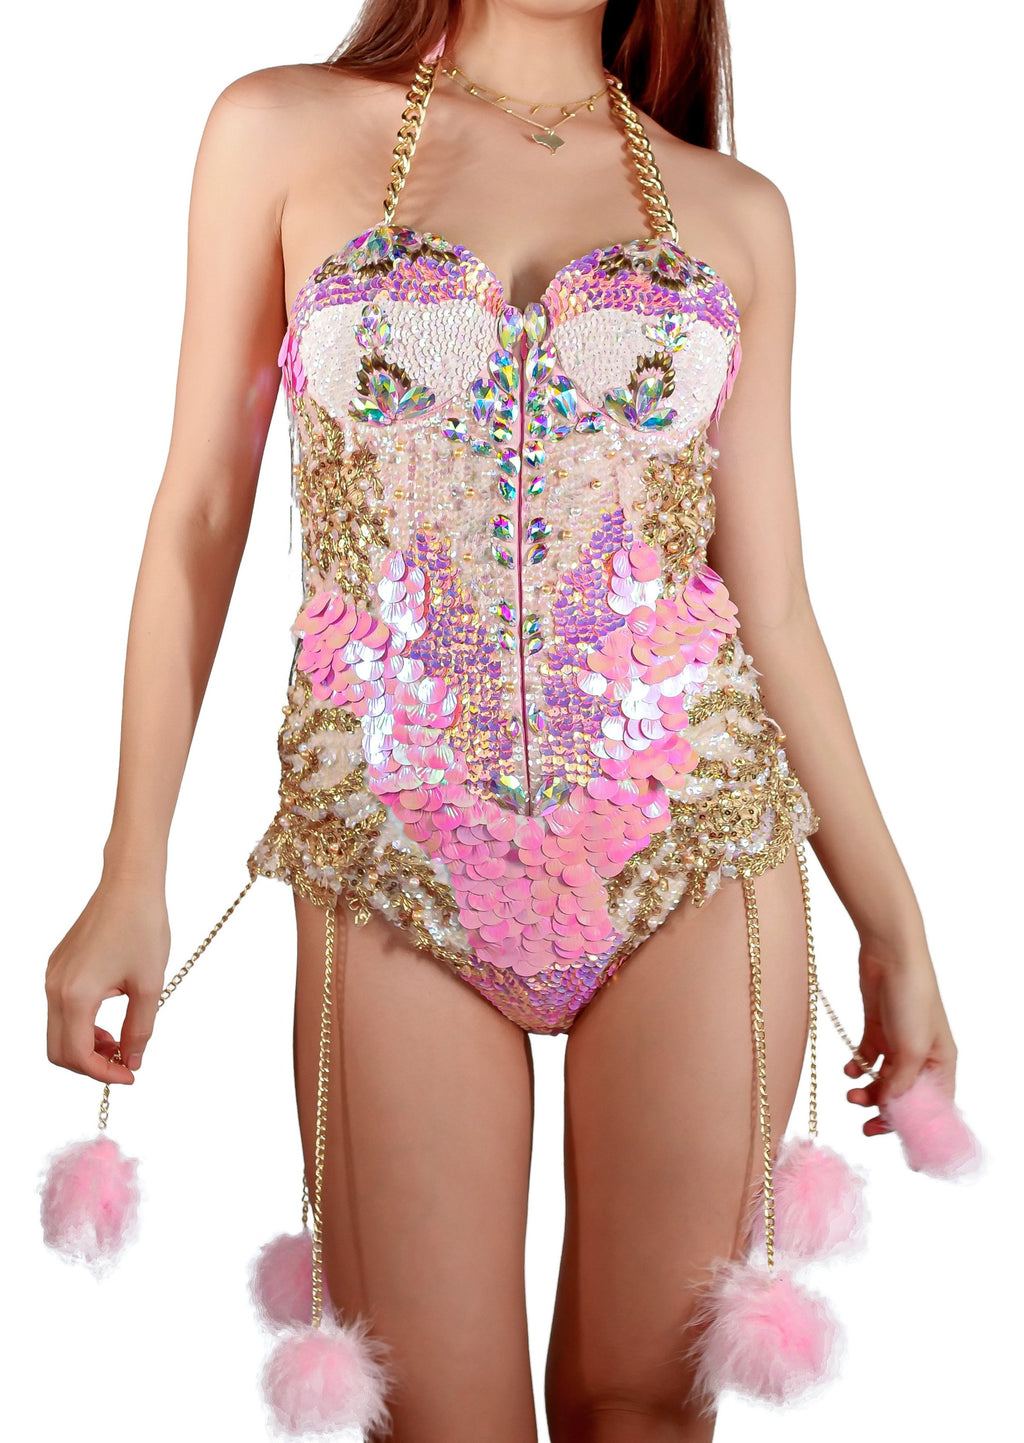 Cotton Candy Princess Bodysuit